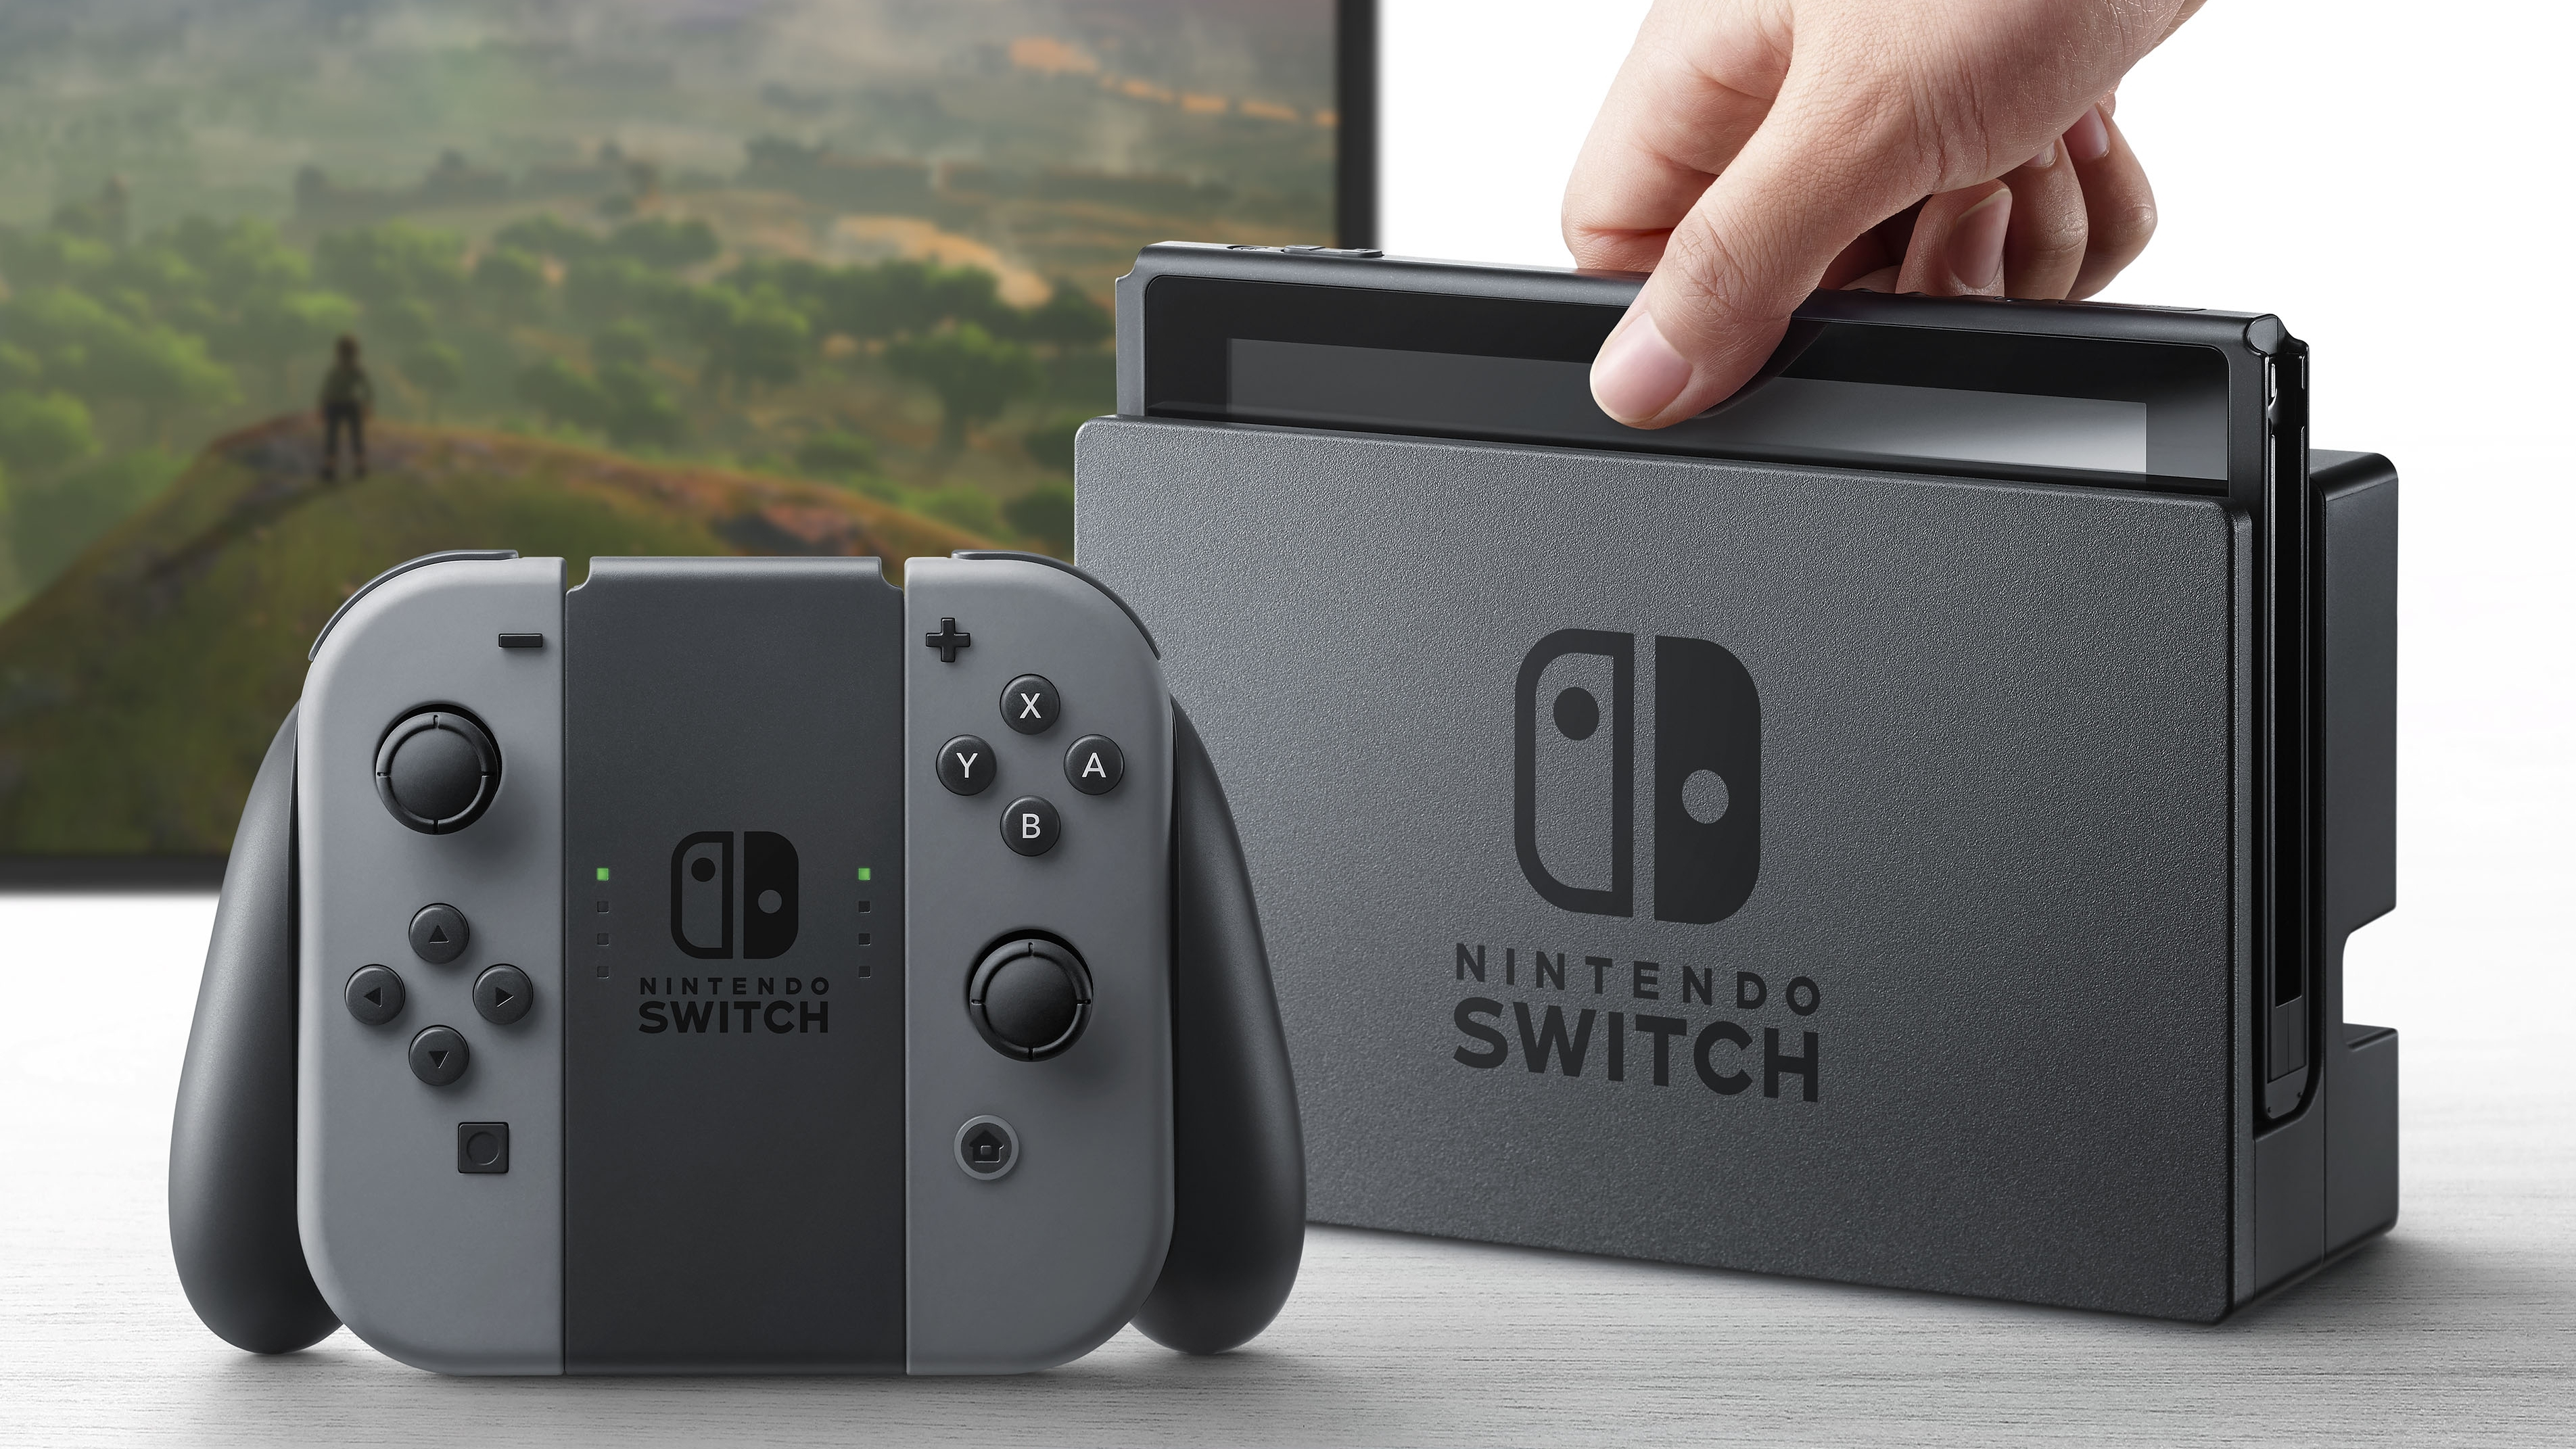 New Nintendo Switch console display.